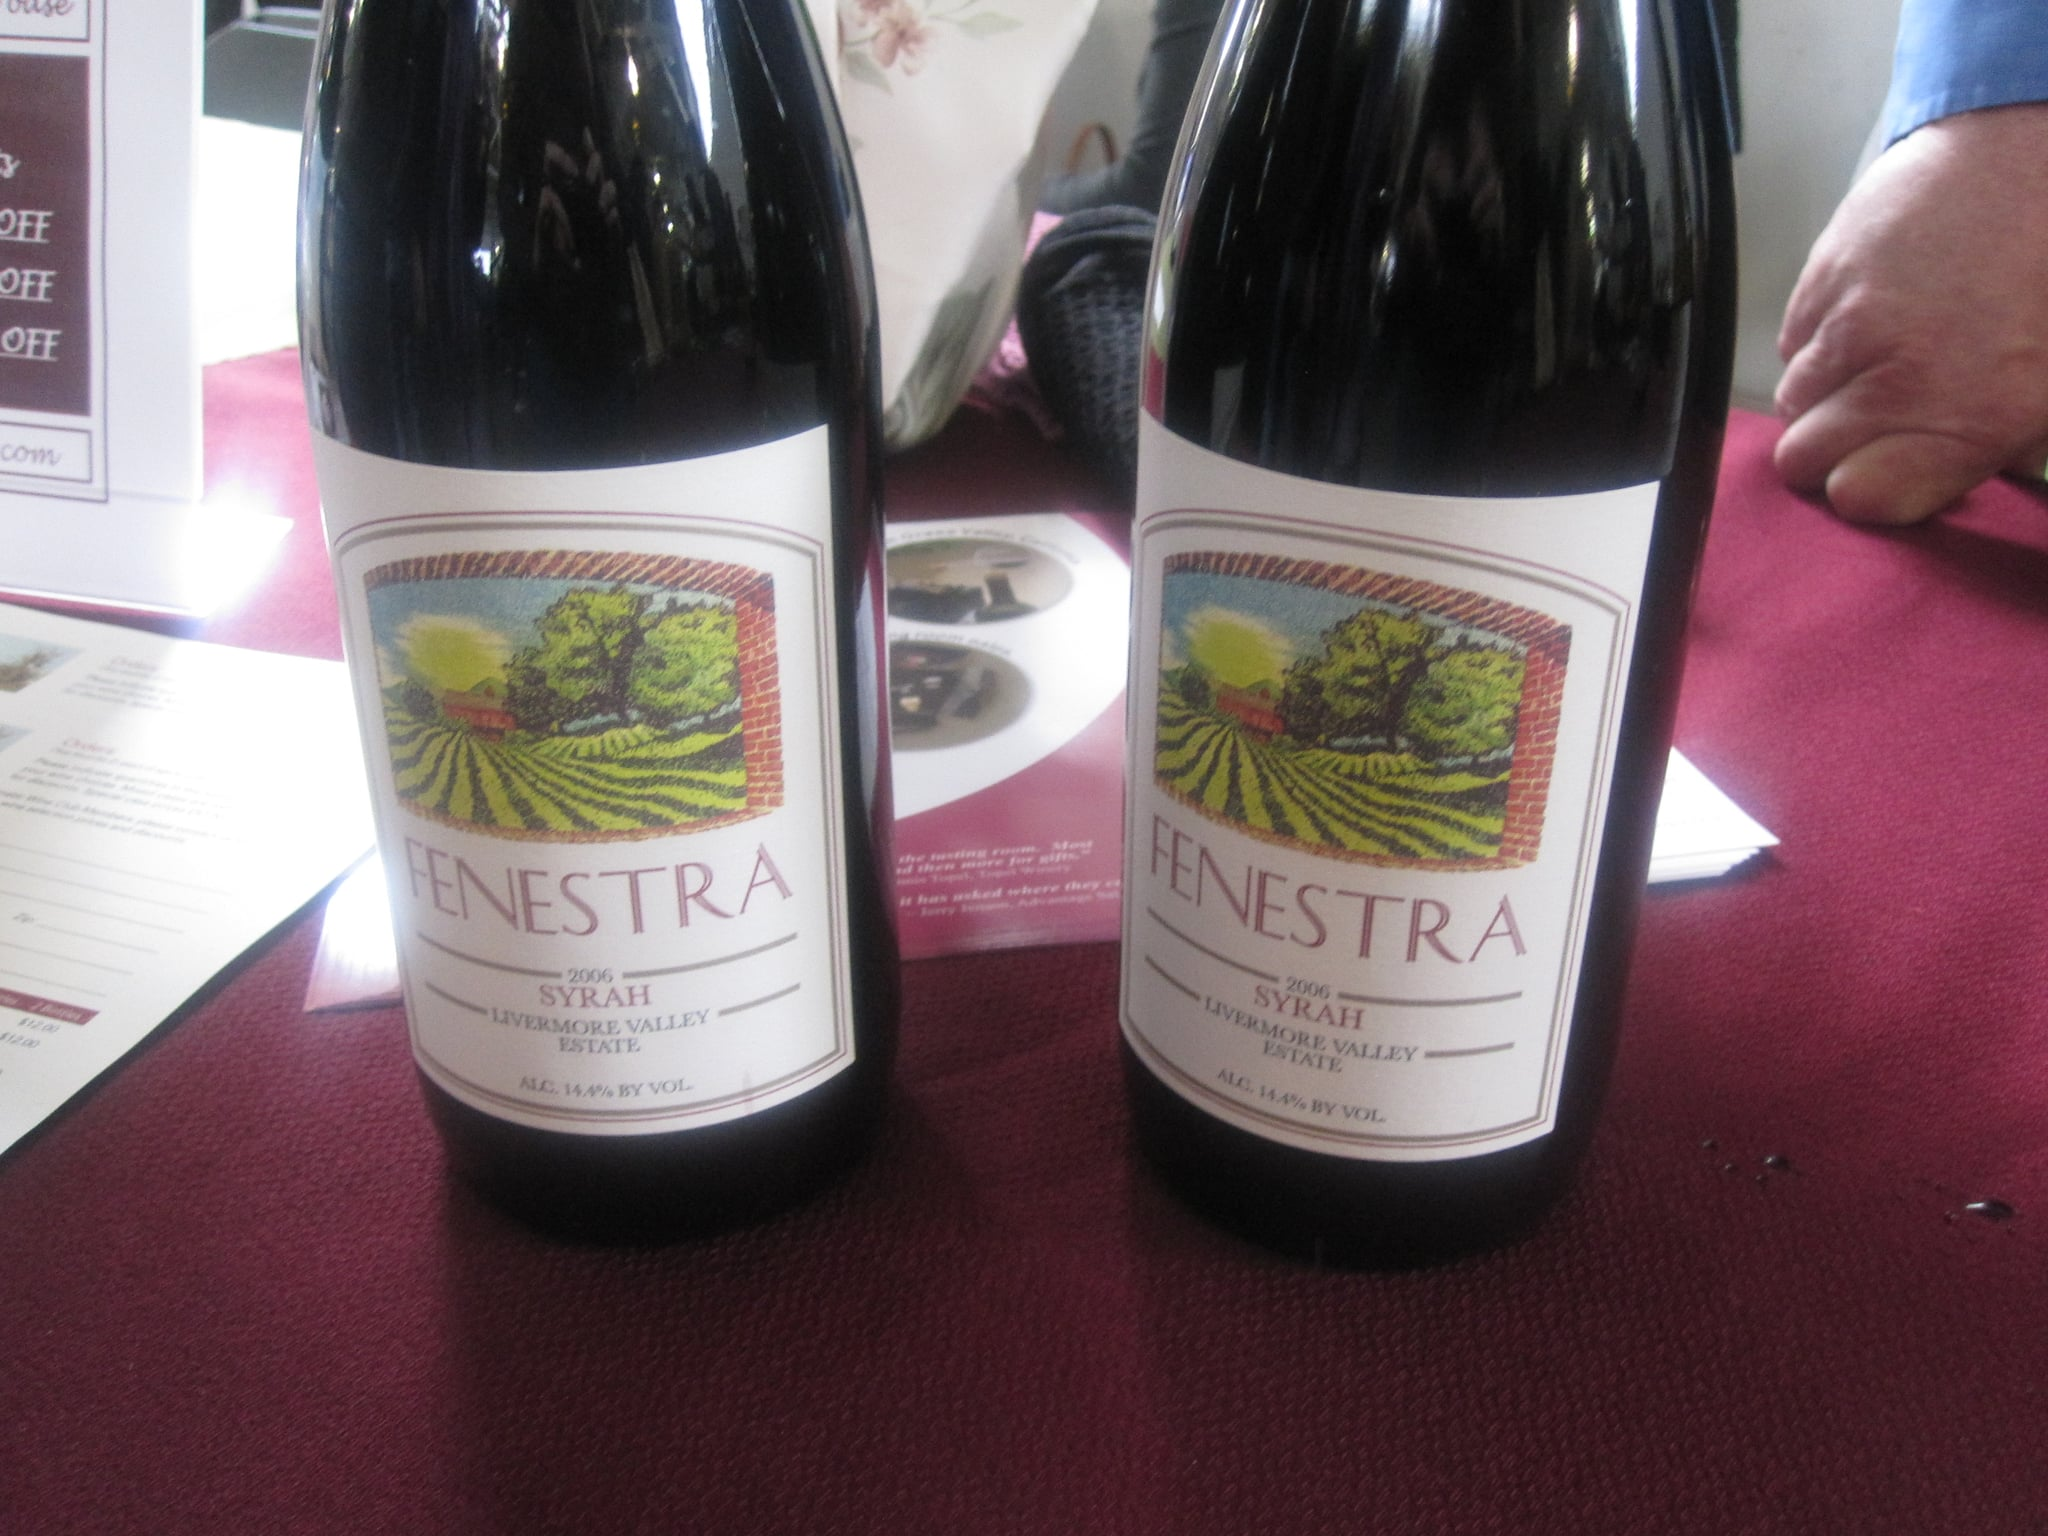 This was a fun taste test. We got to sample two bottles of the same wine...